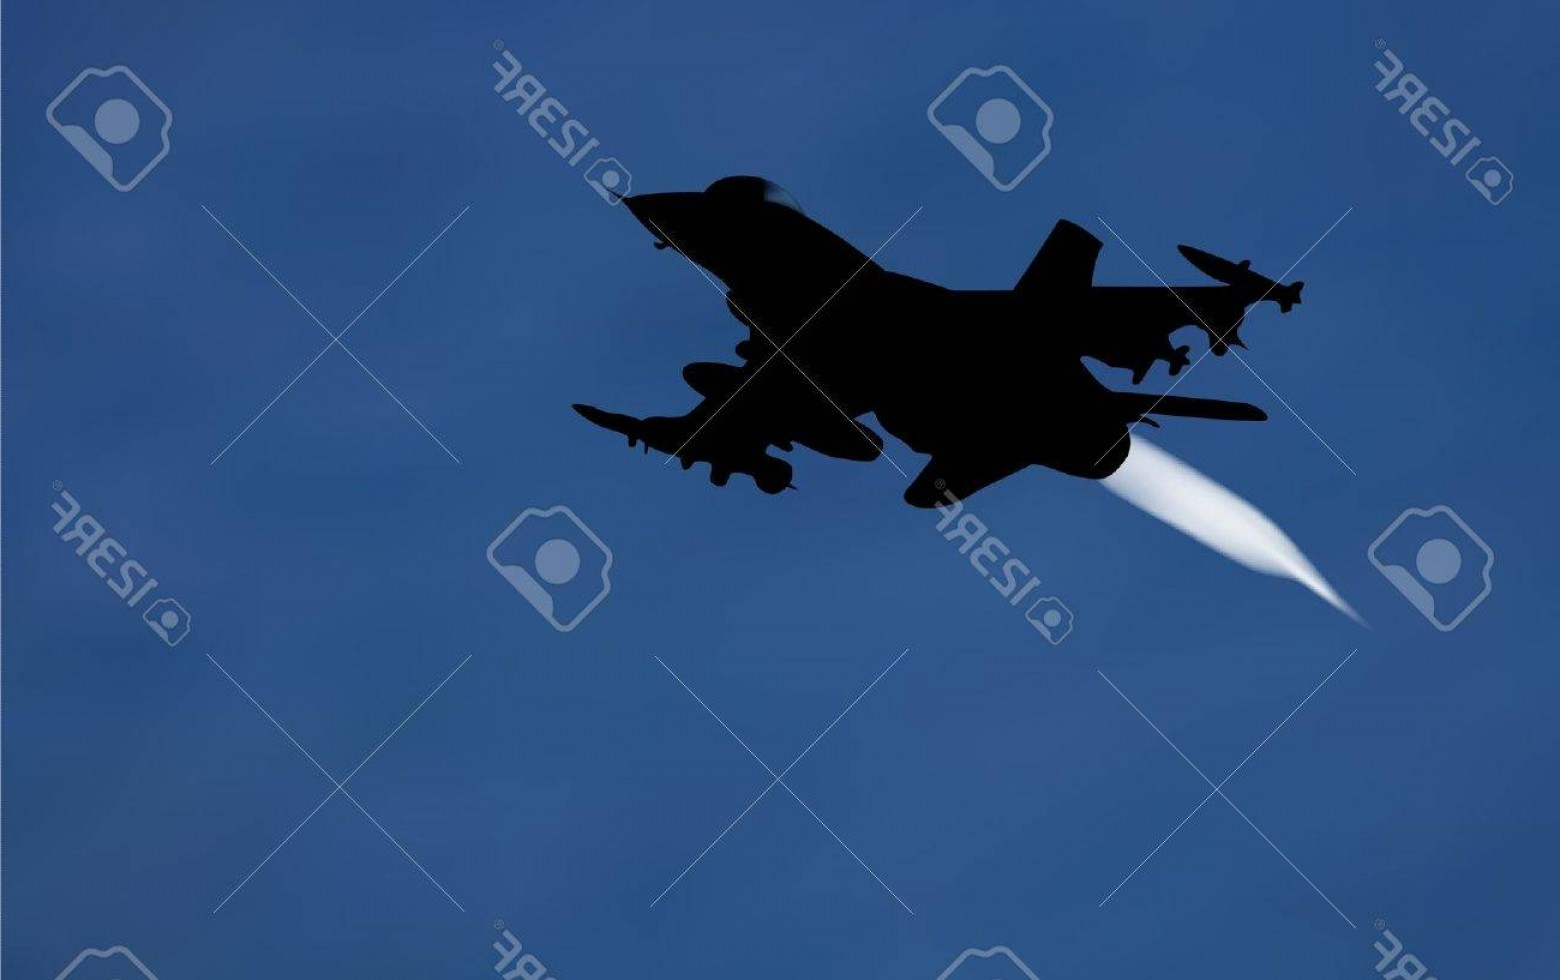 Old School Airplane Fighter Silhouette Vector: Photoillustration Of Bomber Airplane In Silhouette With A White Exhaust Gas Behind Over Night Sky